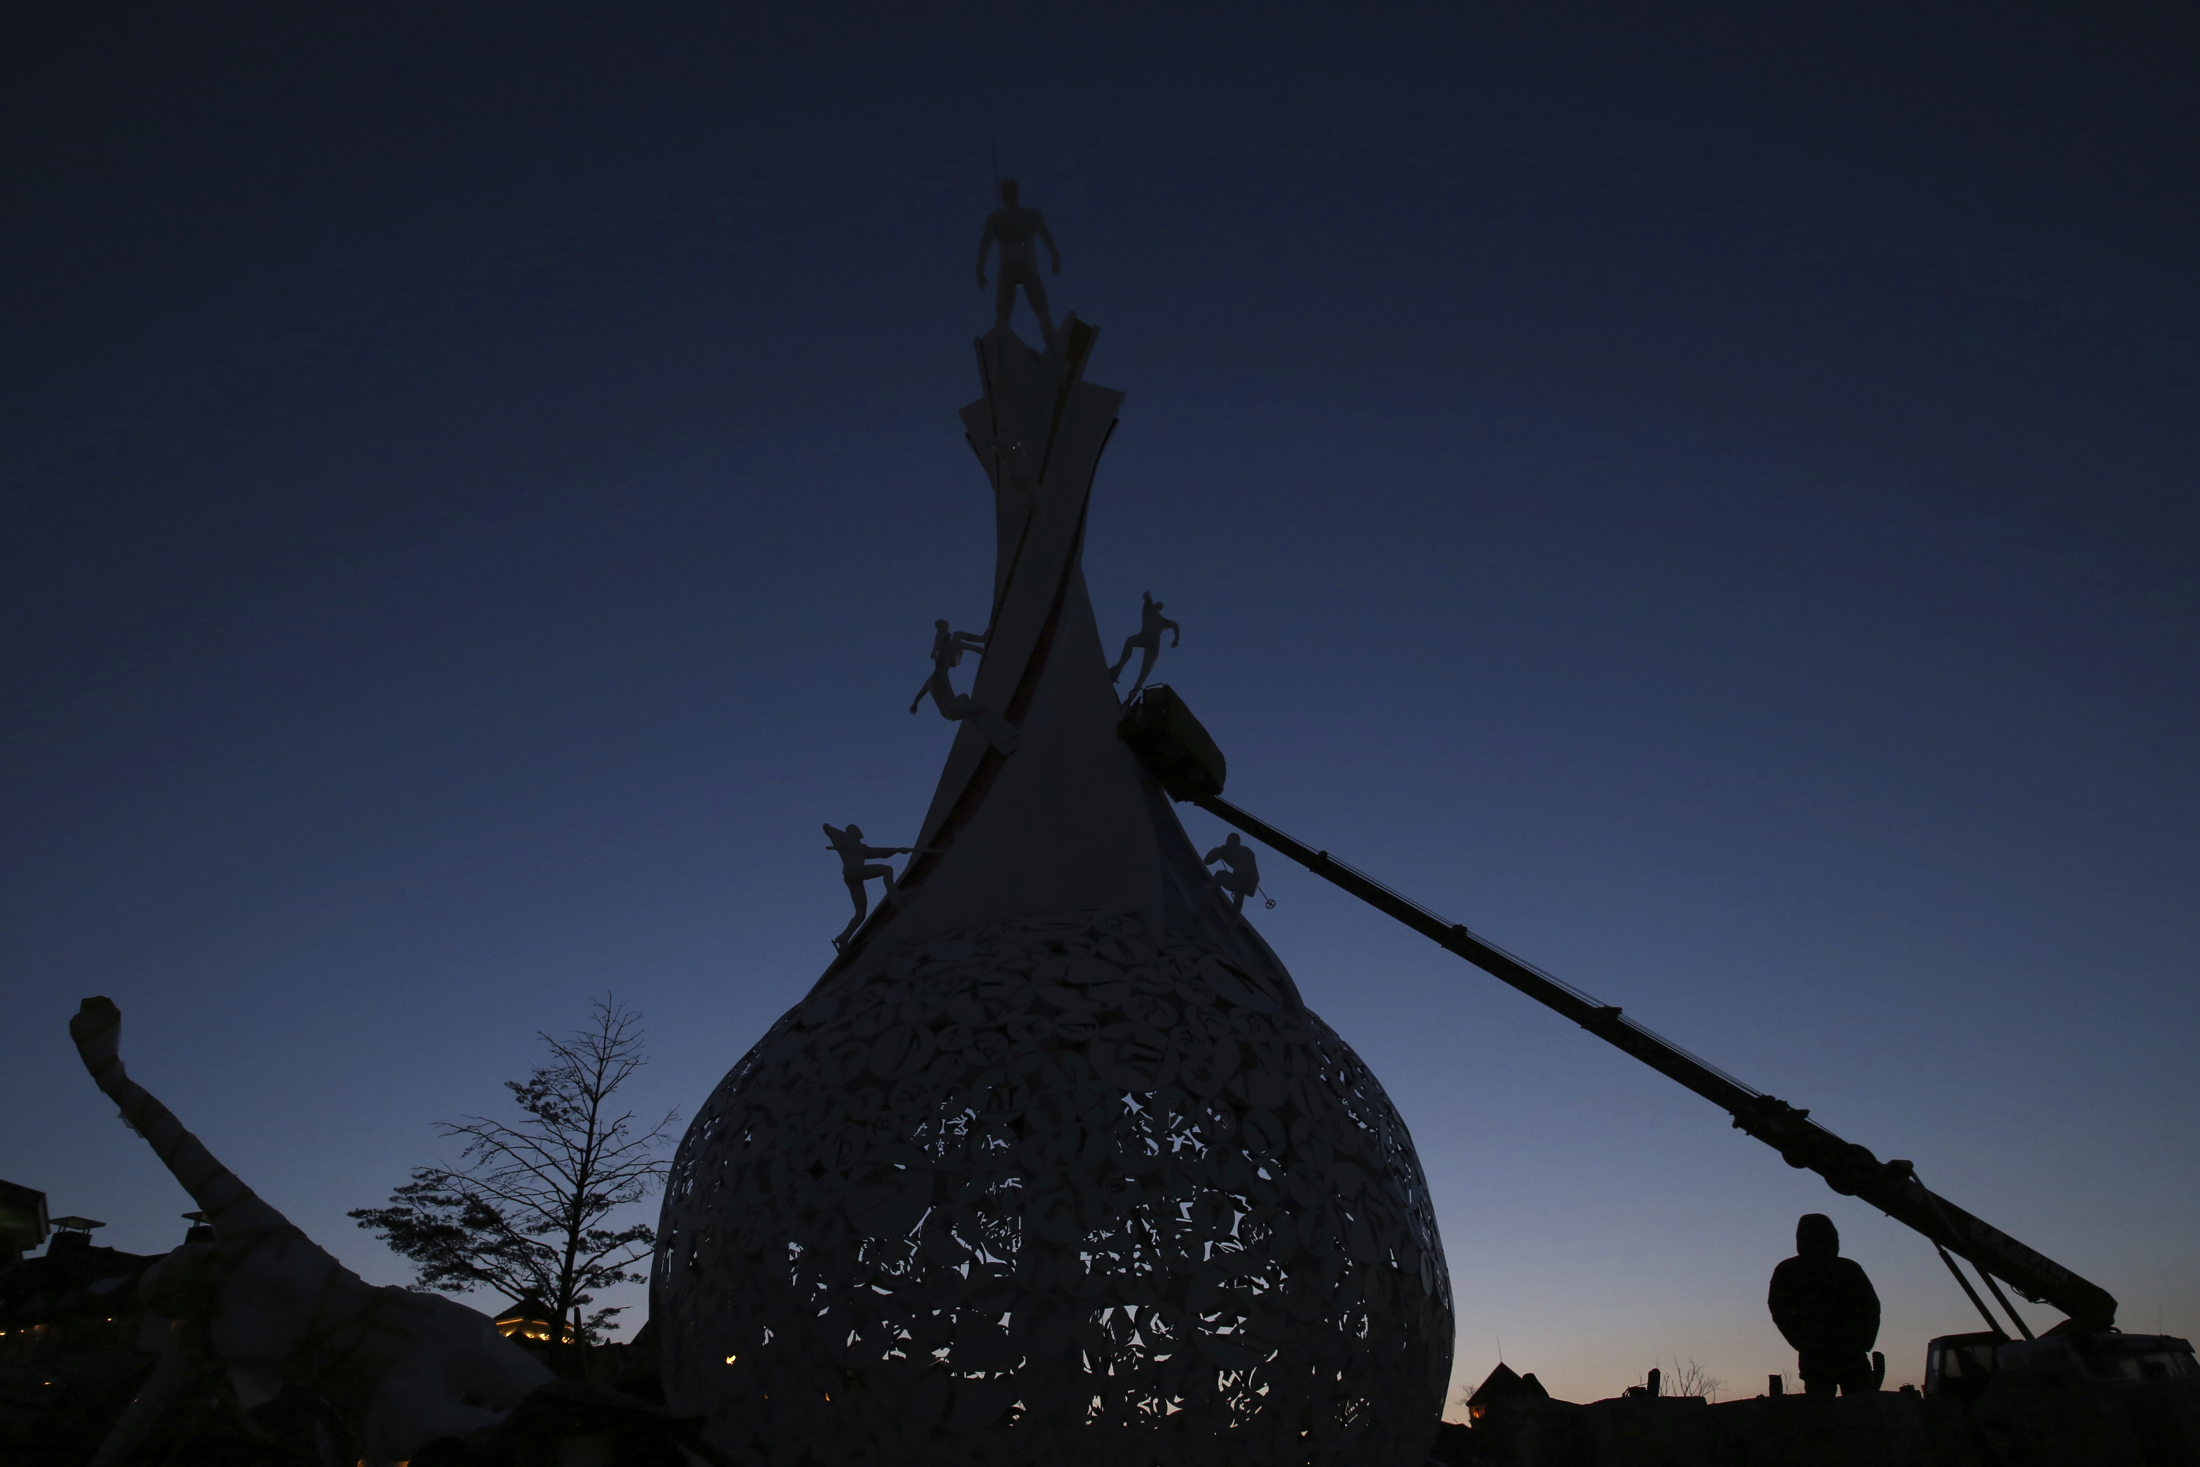 Workers continue building the Pyeongchang 2018 Symbolic Monument ahead of the 2018 Winter Olympics in Pyeongchang, South Korea, Tuesday, Feb. 6, 2018. (Aaron Favila/AP)